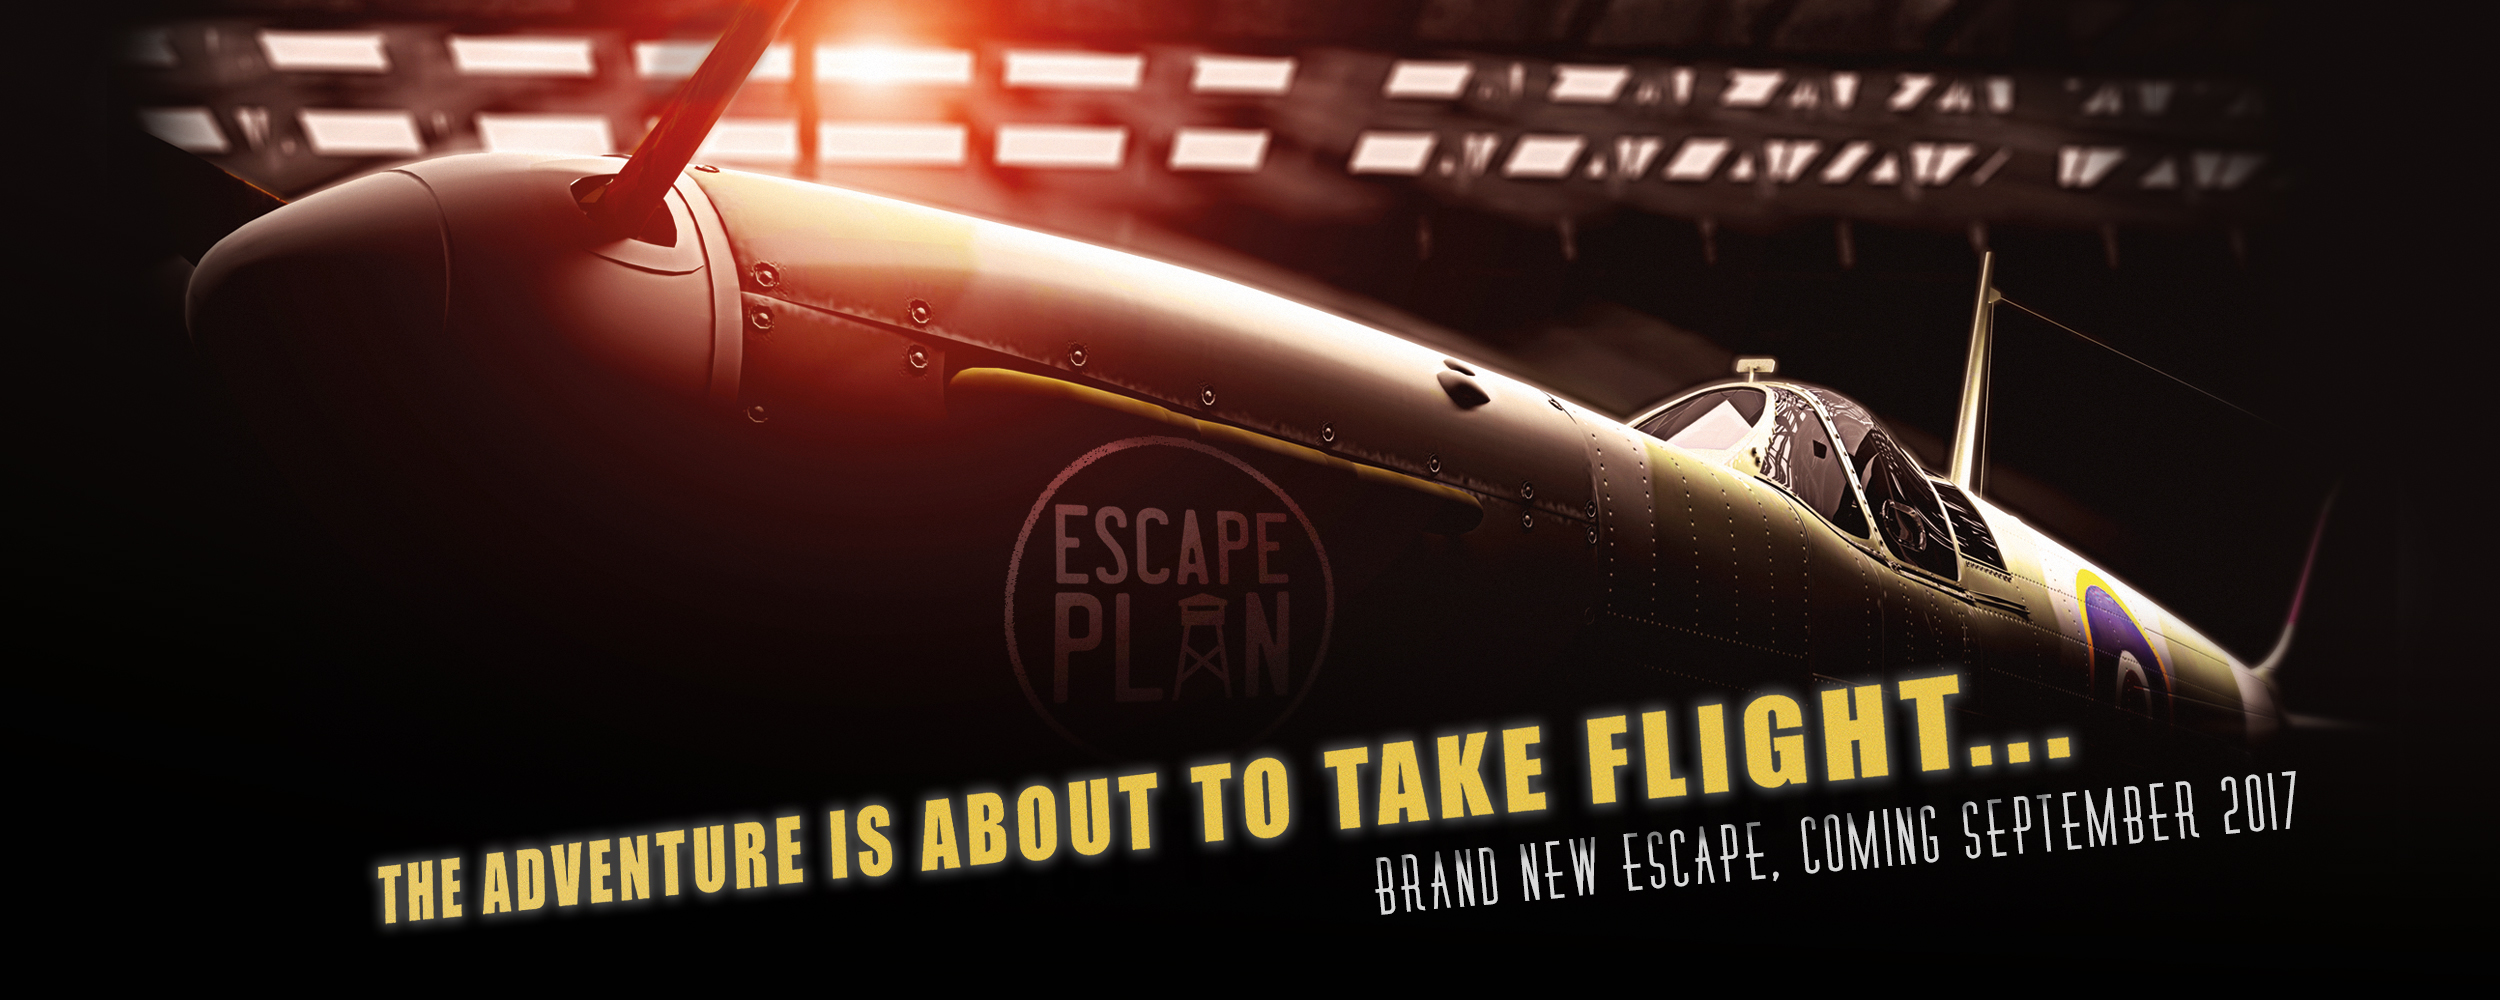 Spitfire promo shot for The Battle for Britain, the new escape room experience from Escape Plan Ltd.